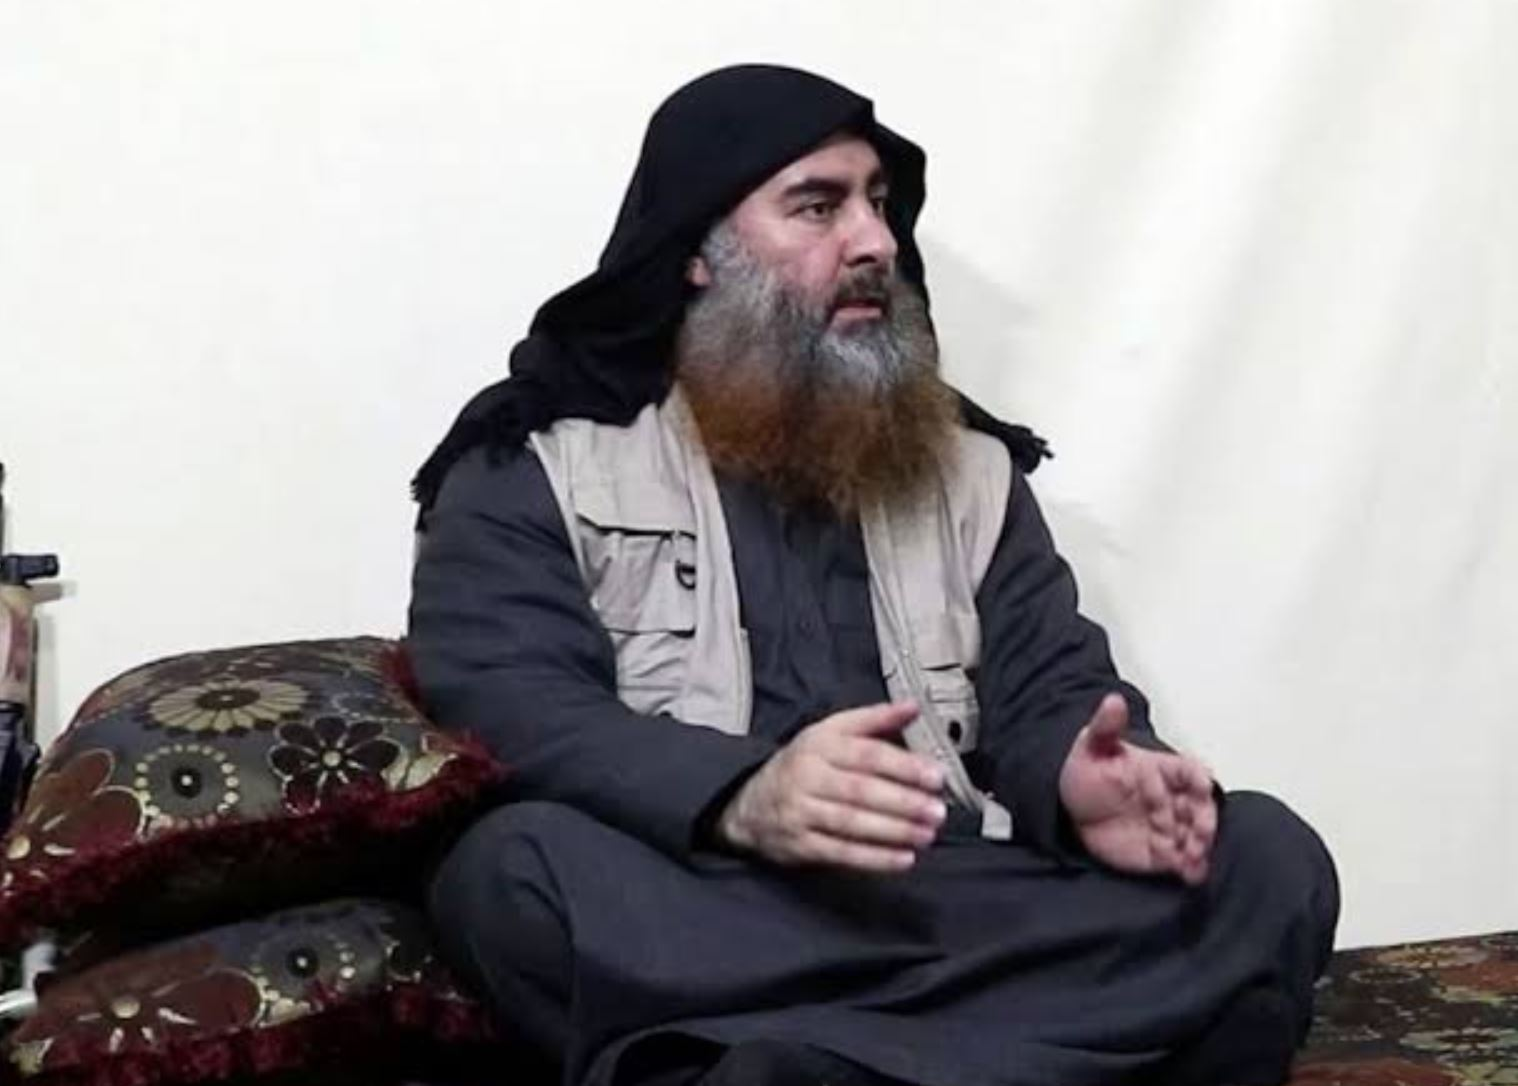 Trump Says Islamic State Leaders No. 2 Also Killed